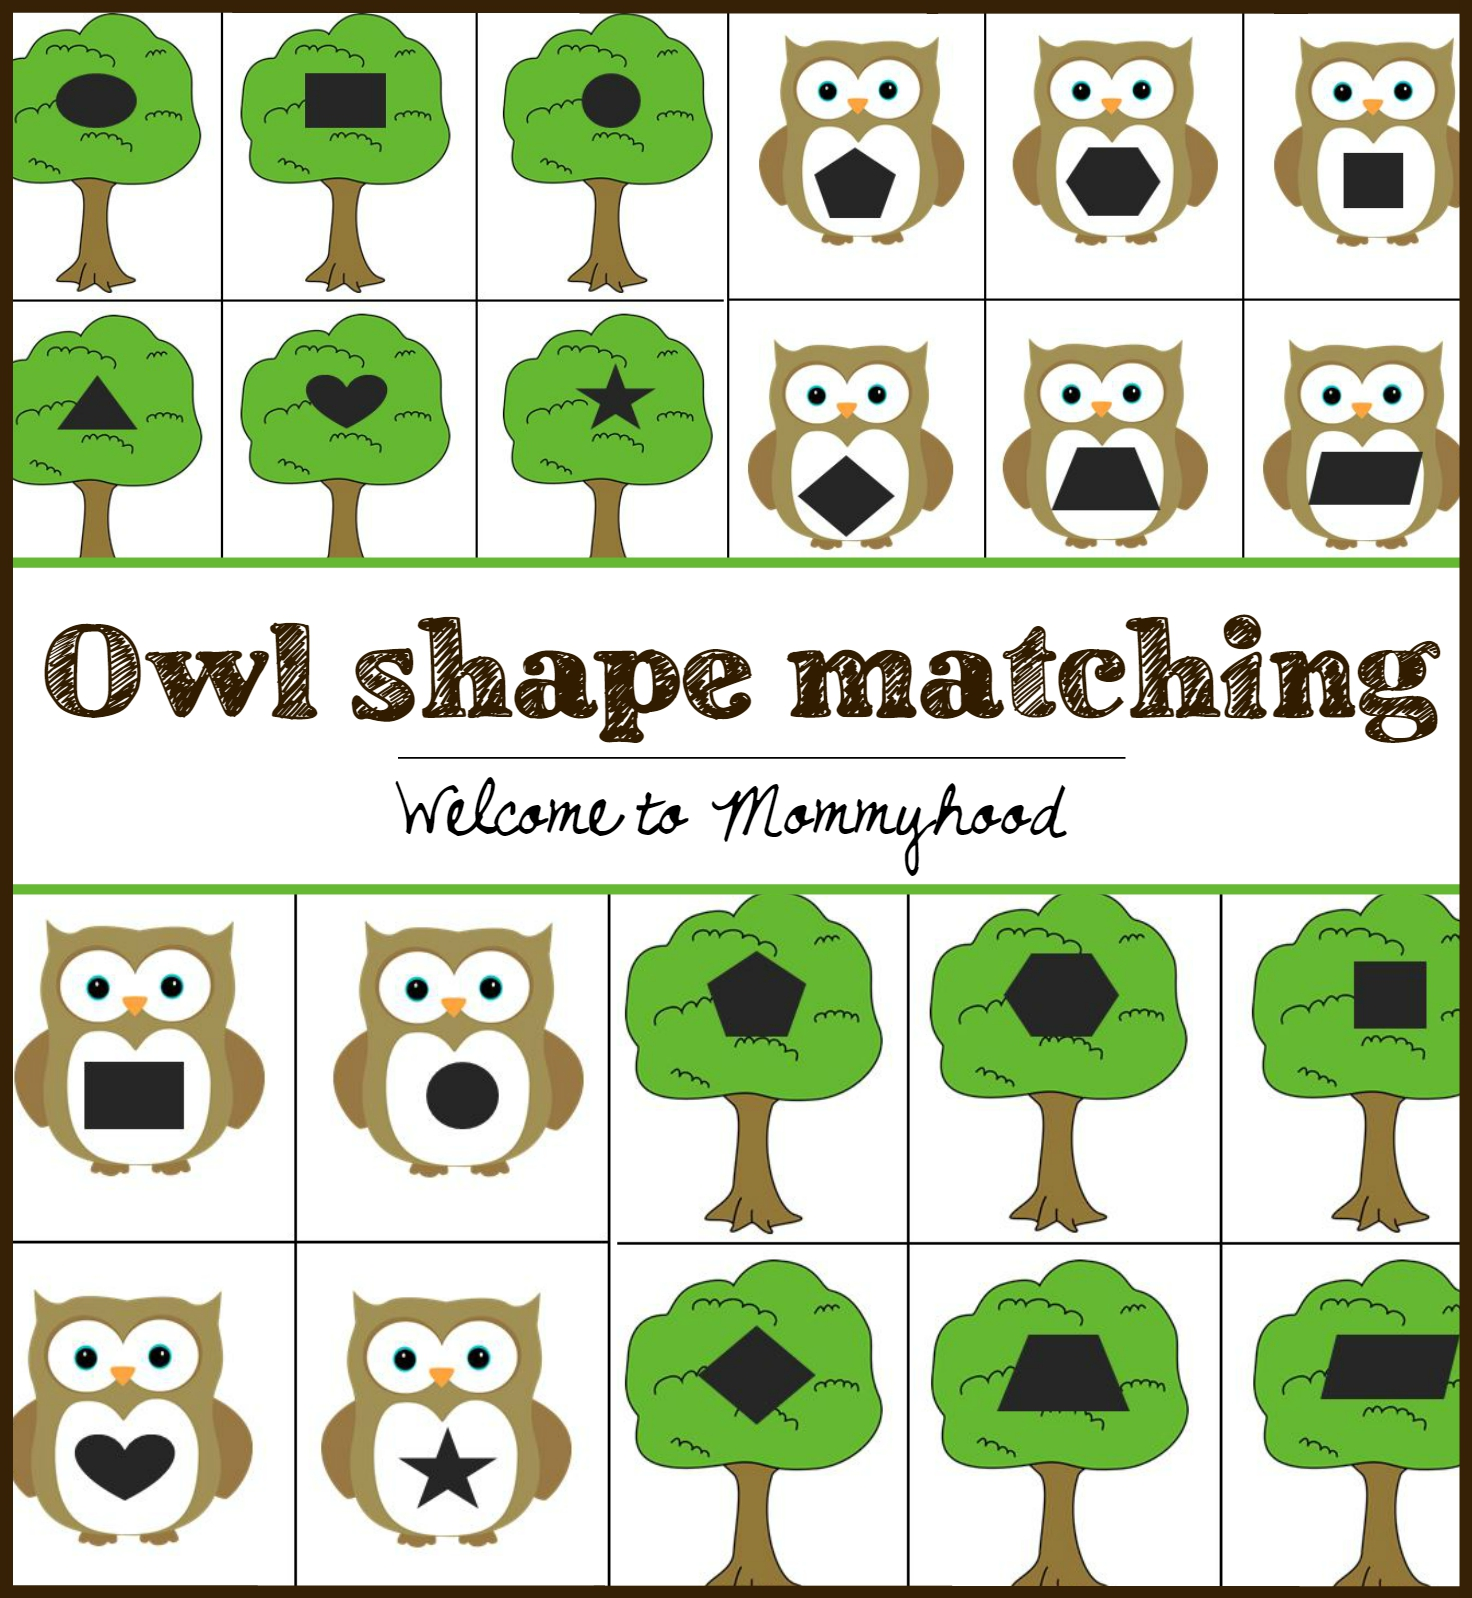 B F Ab D De Aaa as well Books About Hibernation And Migration besides Wild Animals as well  additionally A C E C C Ba A. on hibernation printables for kindergarten